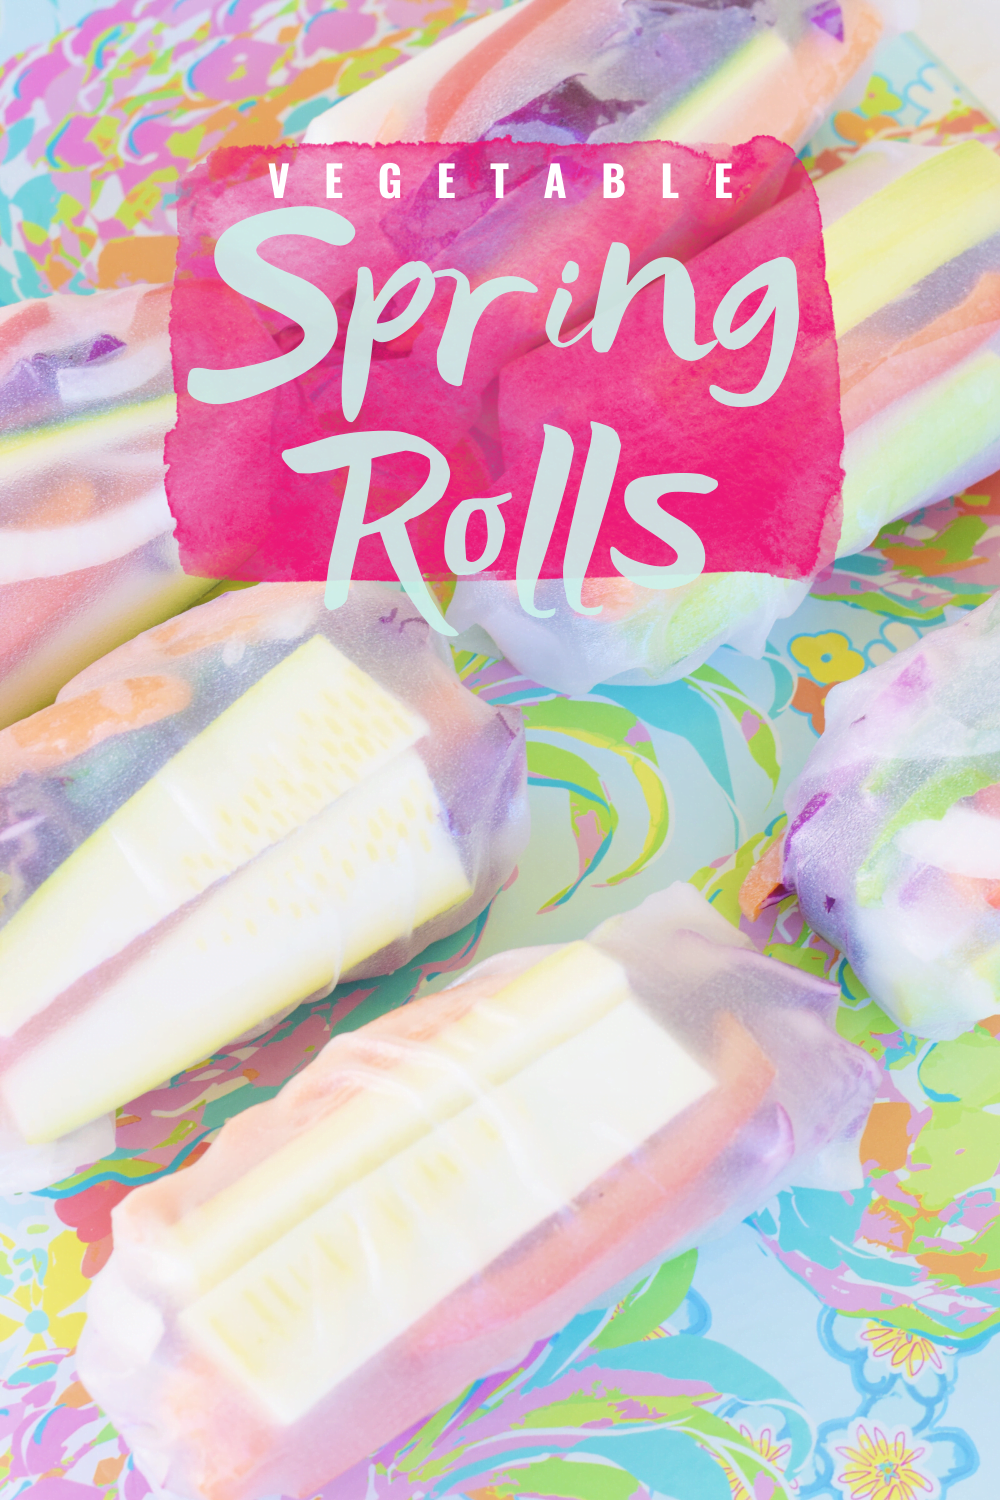 Colorful Vegetable Spring Rolls Recipe - Dairy and Gluten Free - Make At Home - Zucchini, Carrots, Onions, Cucumber, Peppers, Basil, Mint + Mixed Greens - Rainbow Spring Rolls -